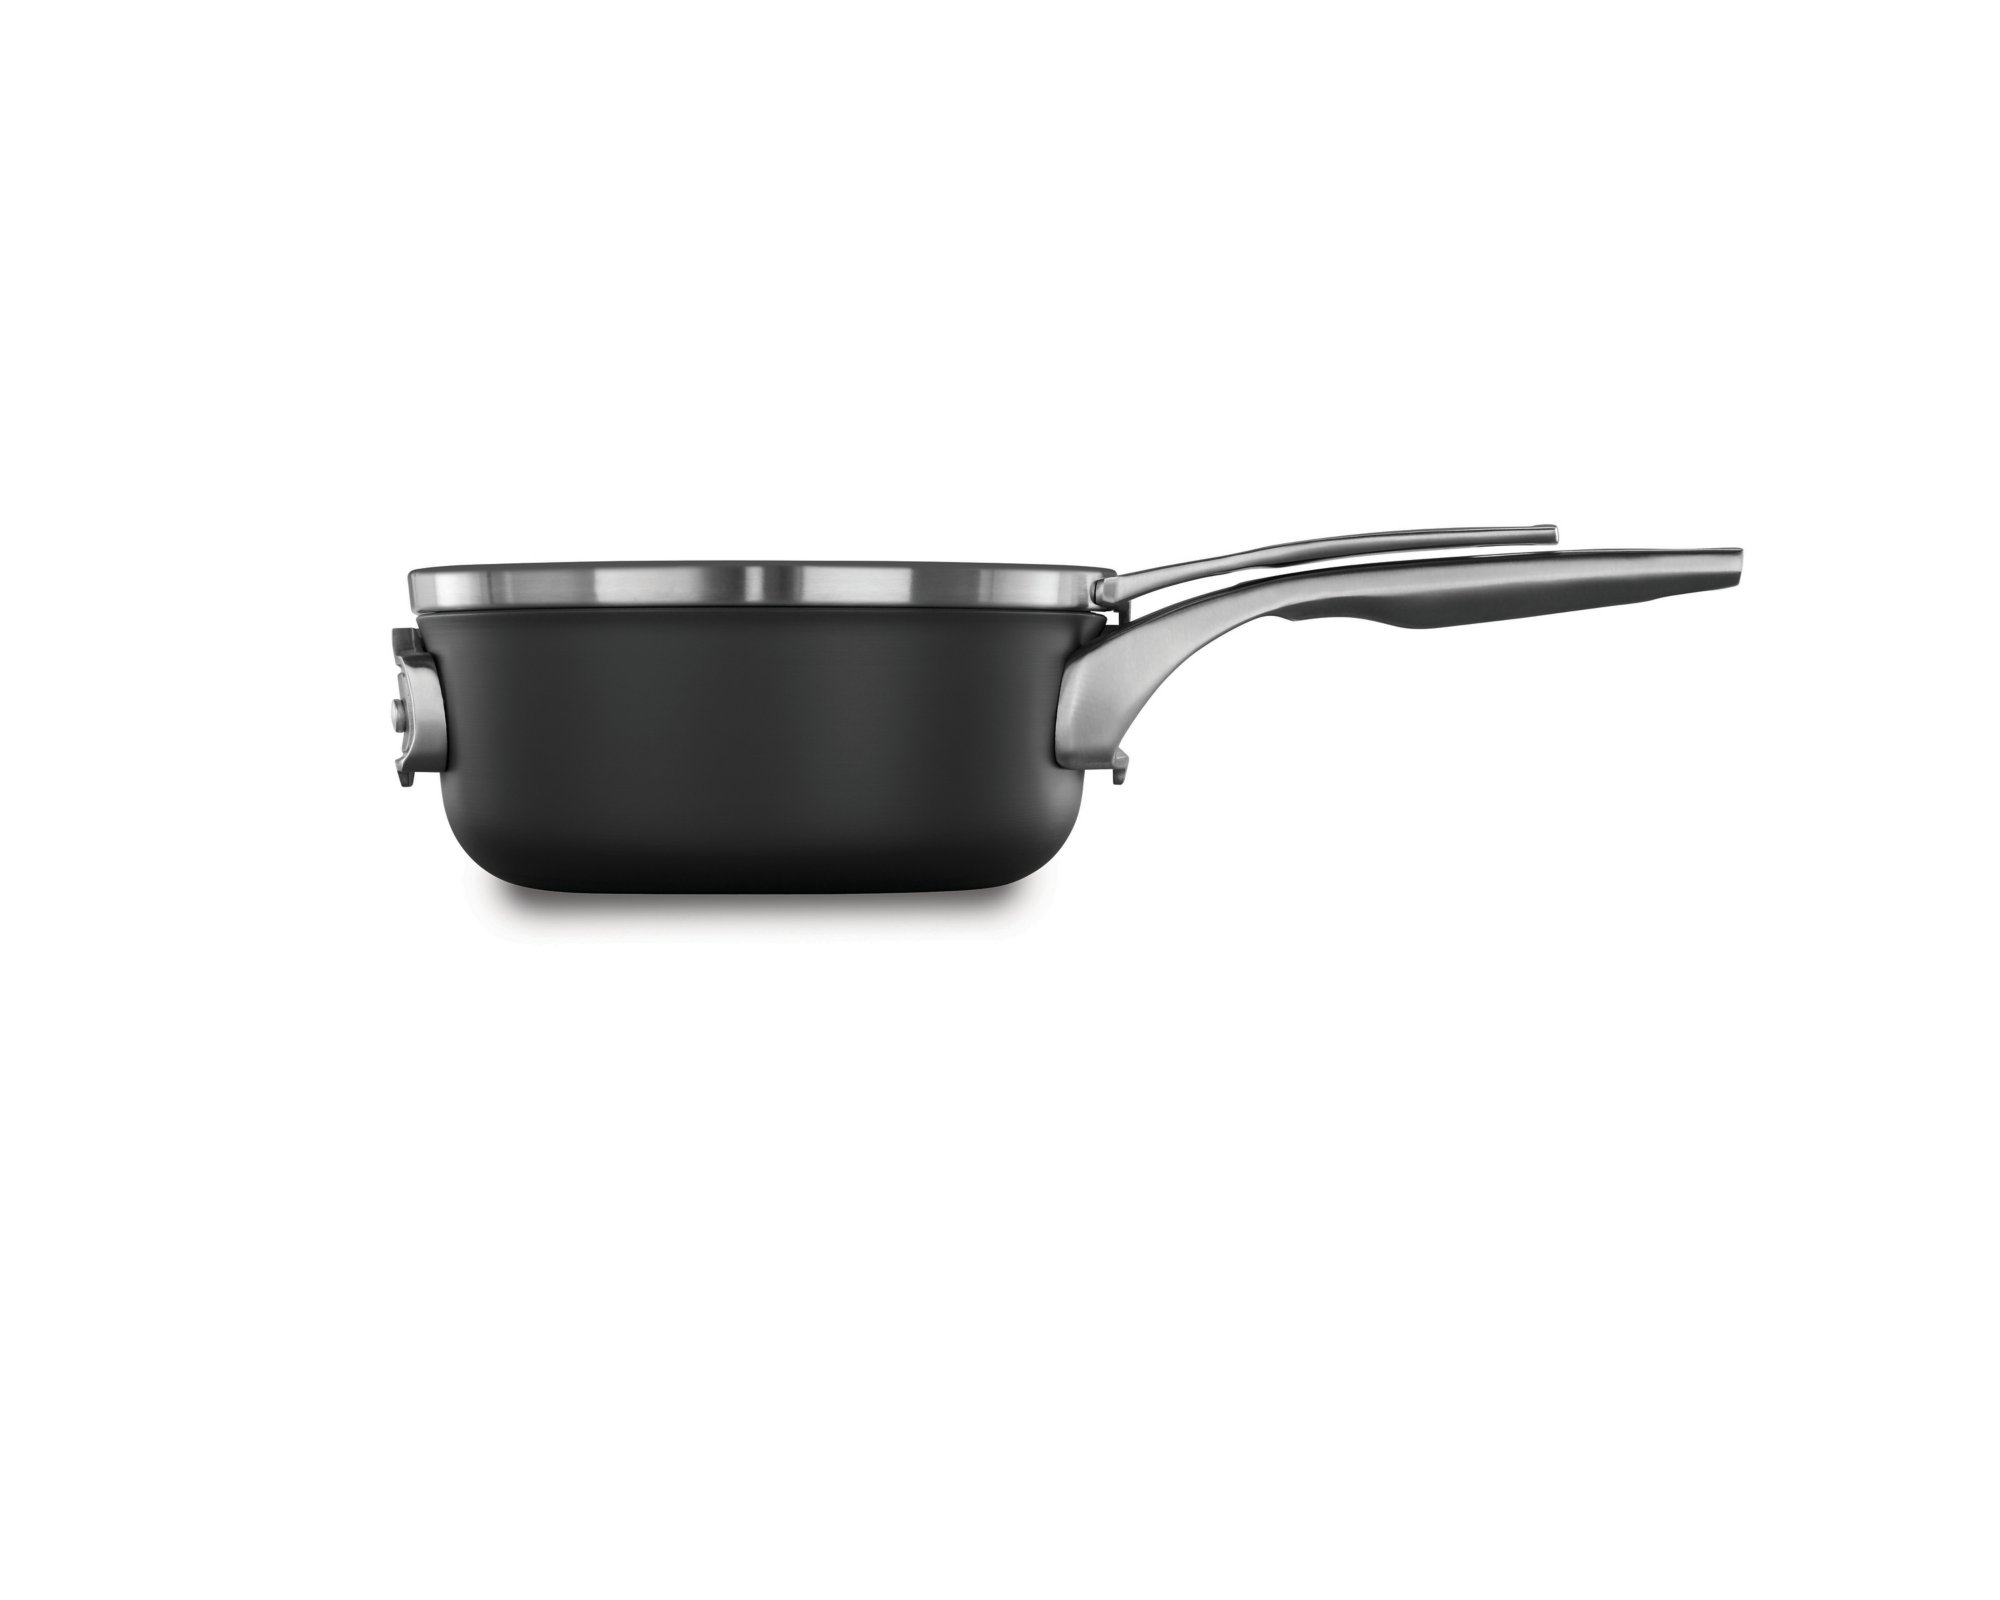 Calphalon Premier Space-Saving Hard-Anodized Nonstick Cookware, 2.5-Quart Sauce Pan with Cover